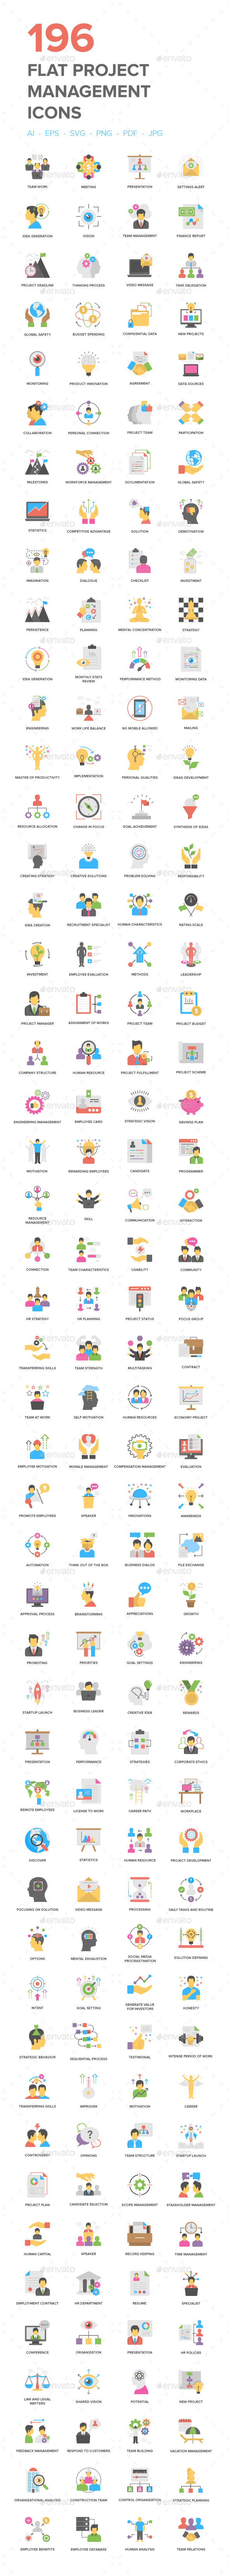 Flat Project Management Icons - Icons